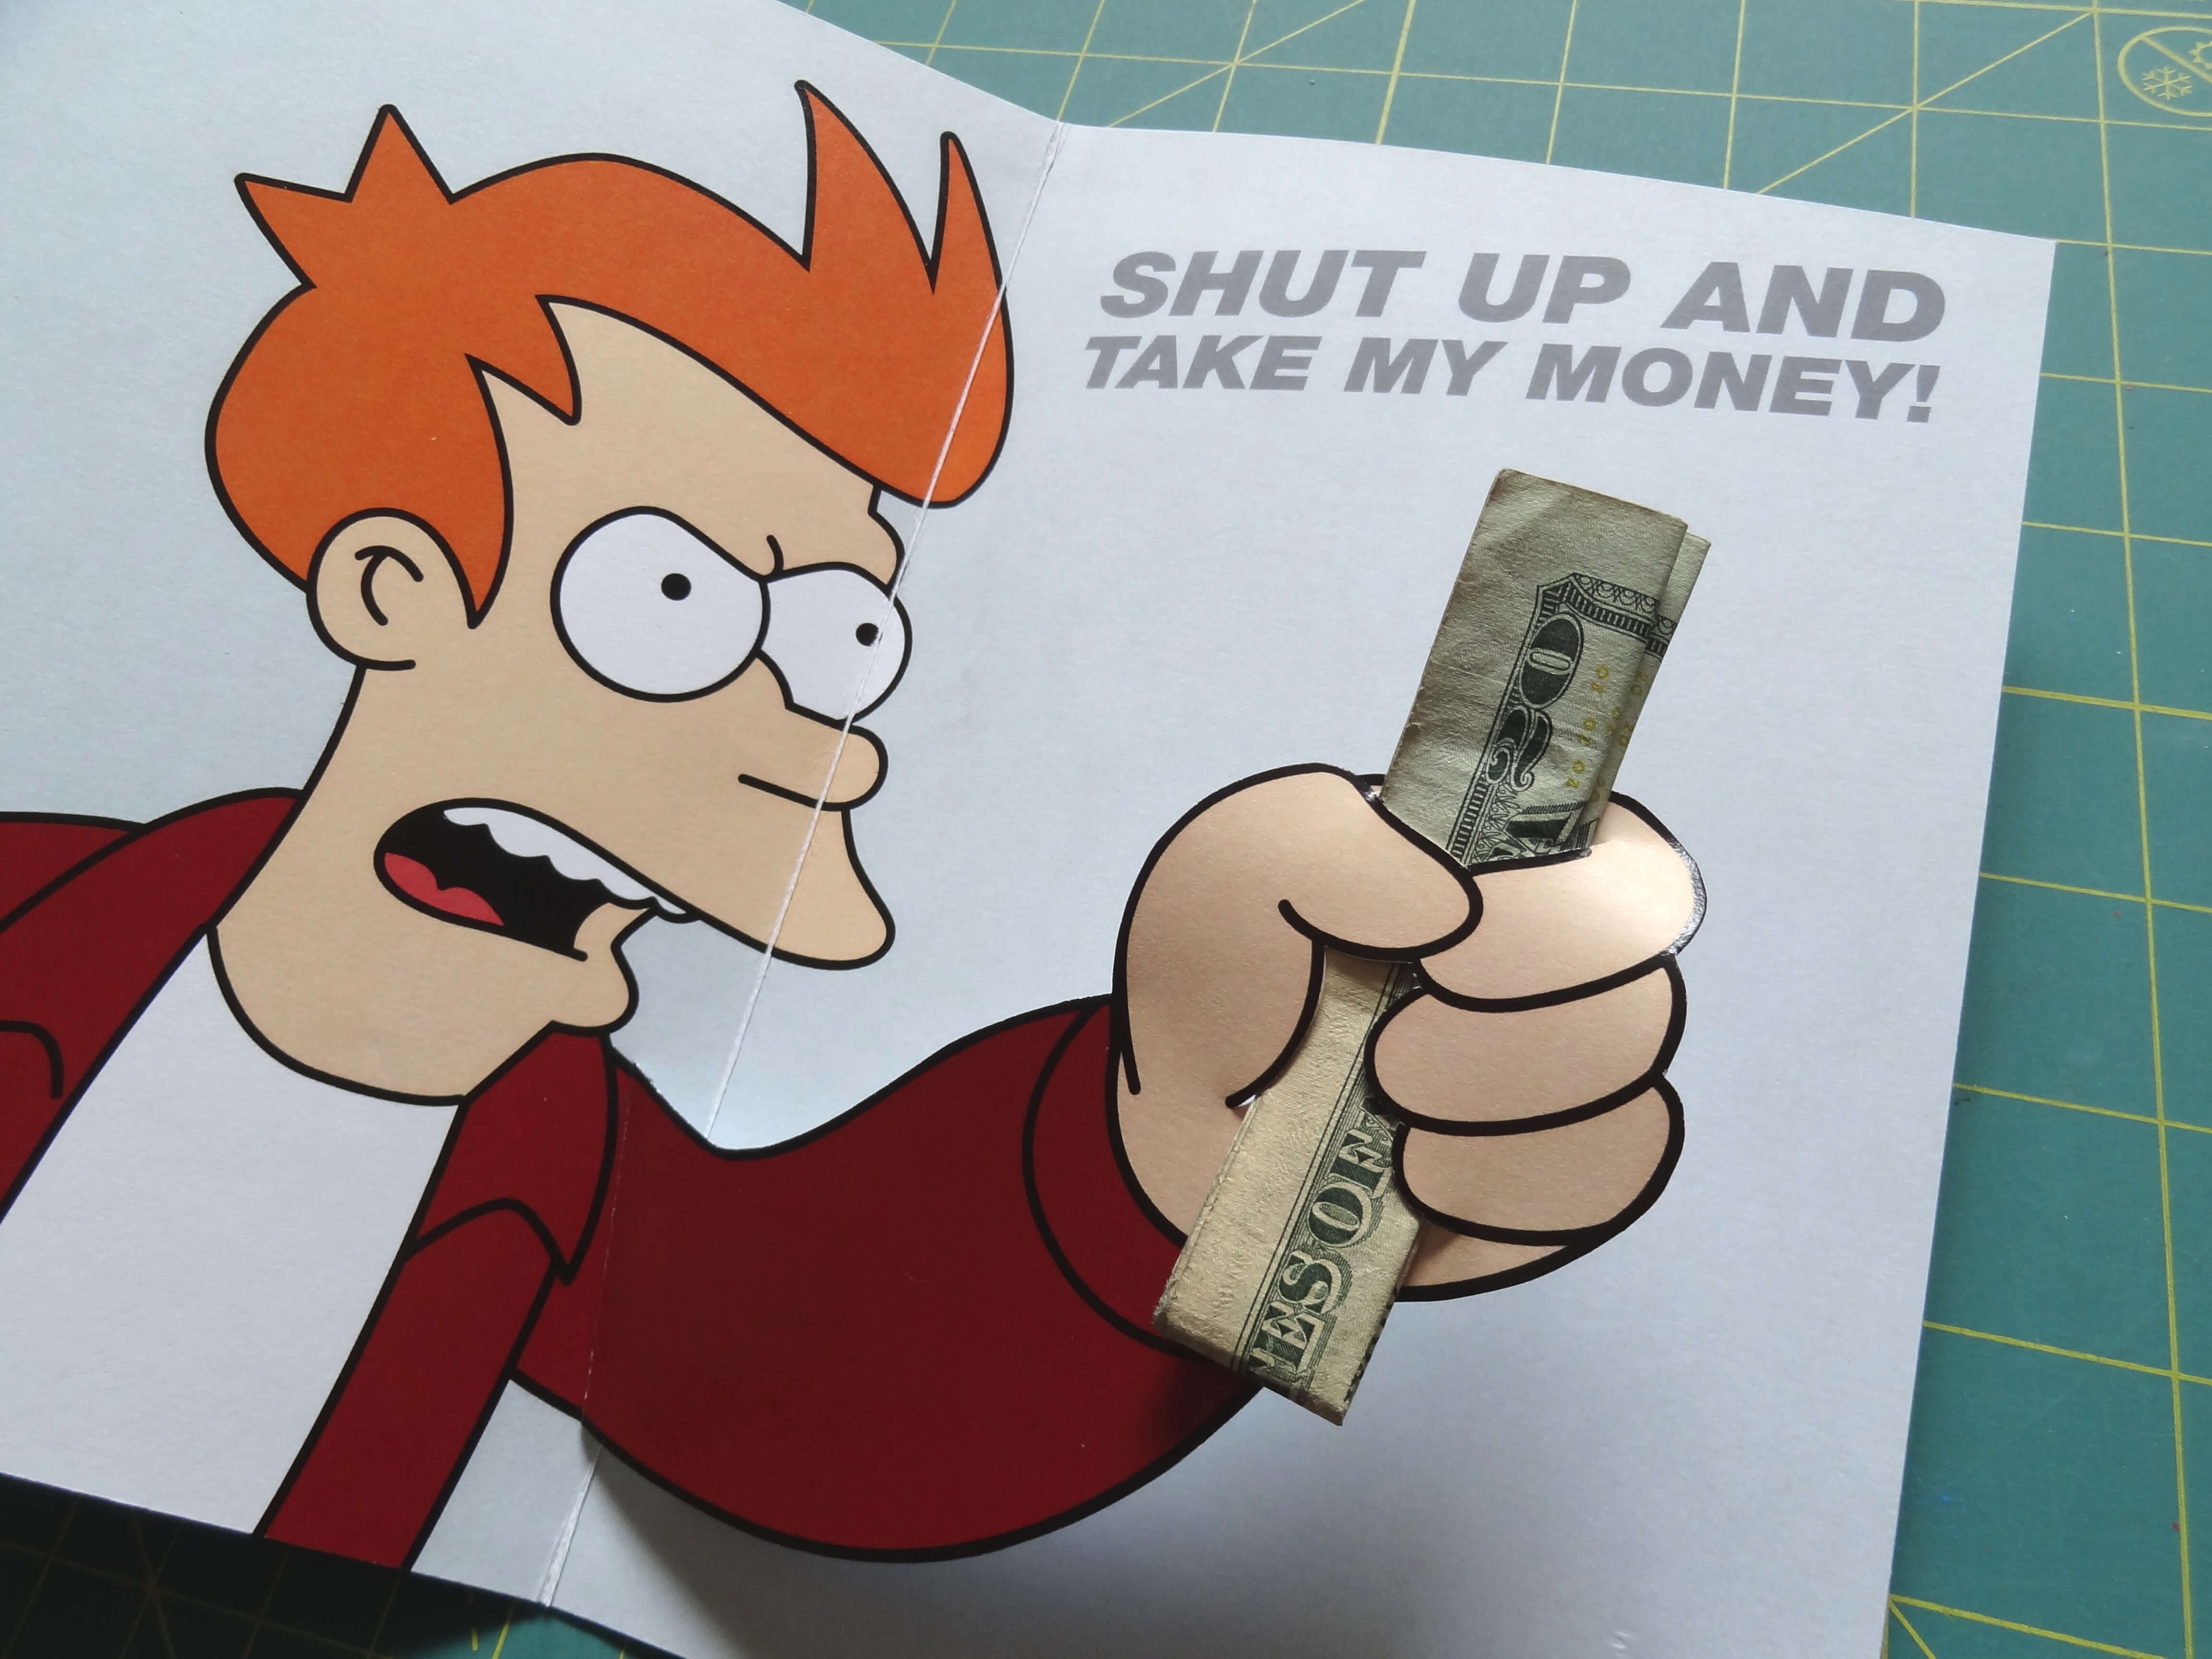 Futurama Meme Gift Card: 6 Steps (With Pictures) In Shut Up And Take My Money Card Template